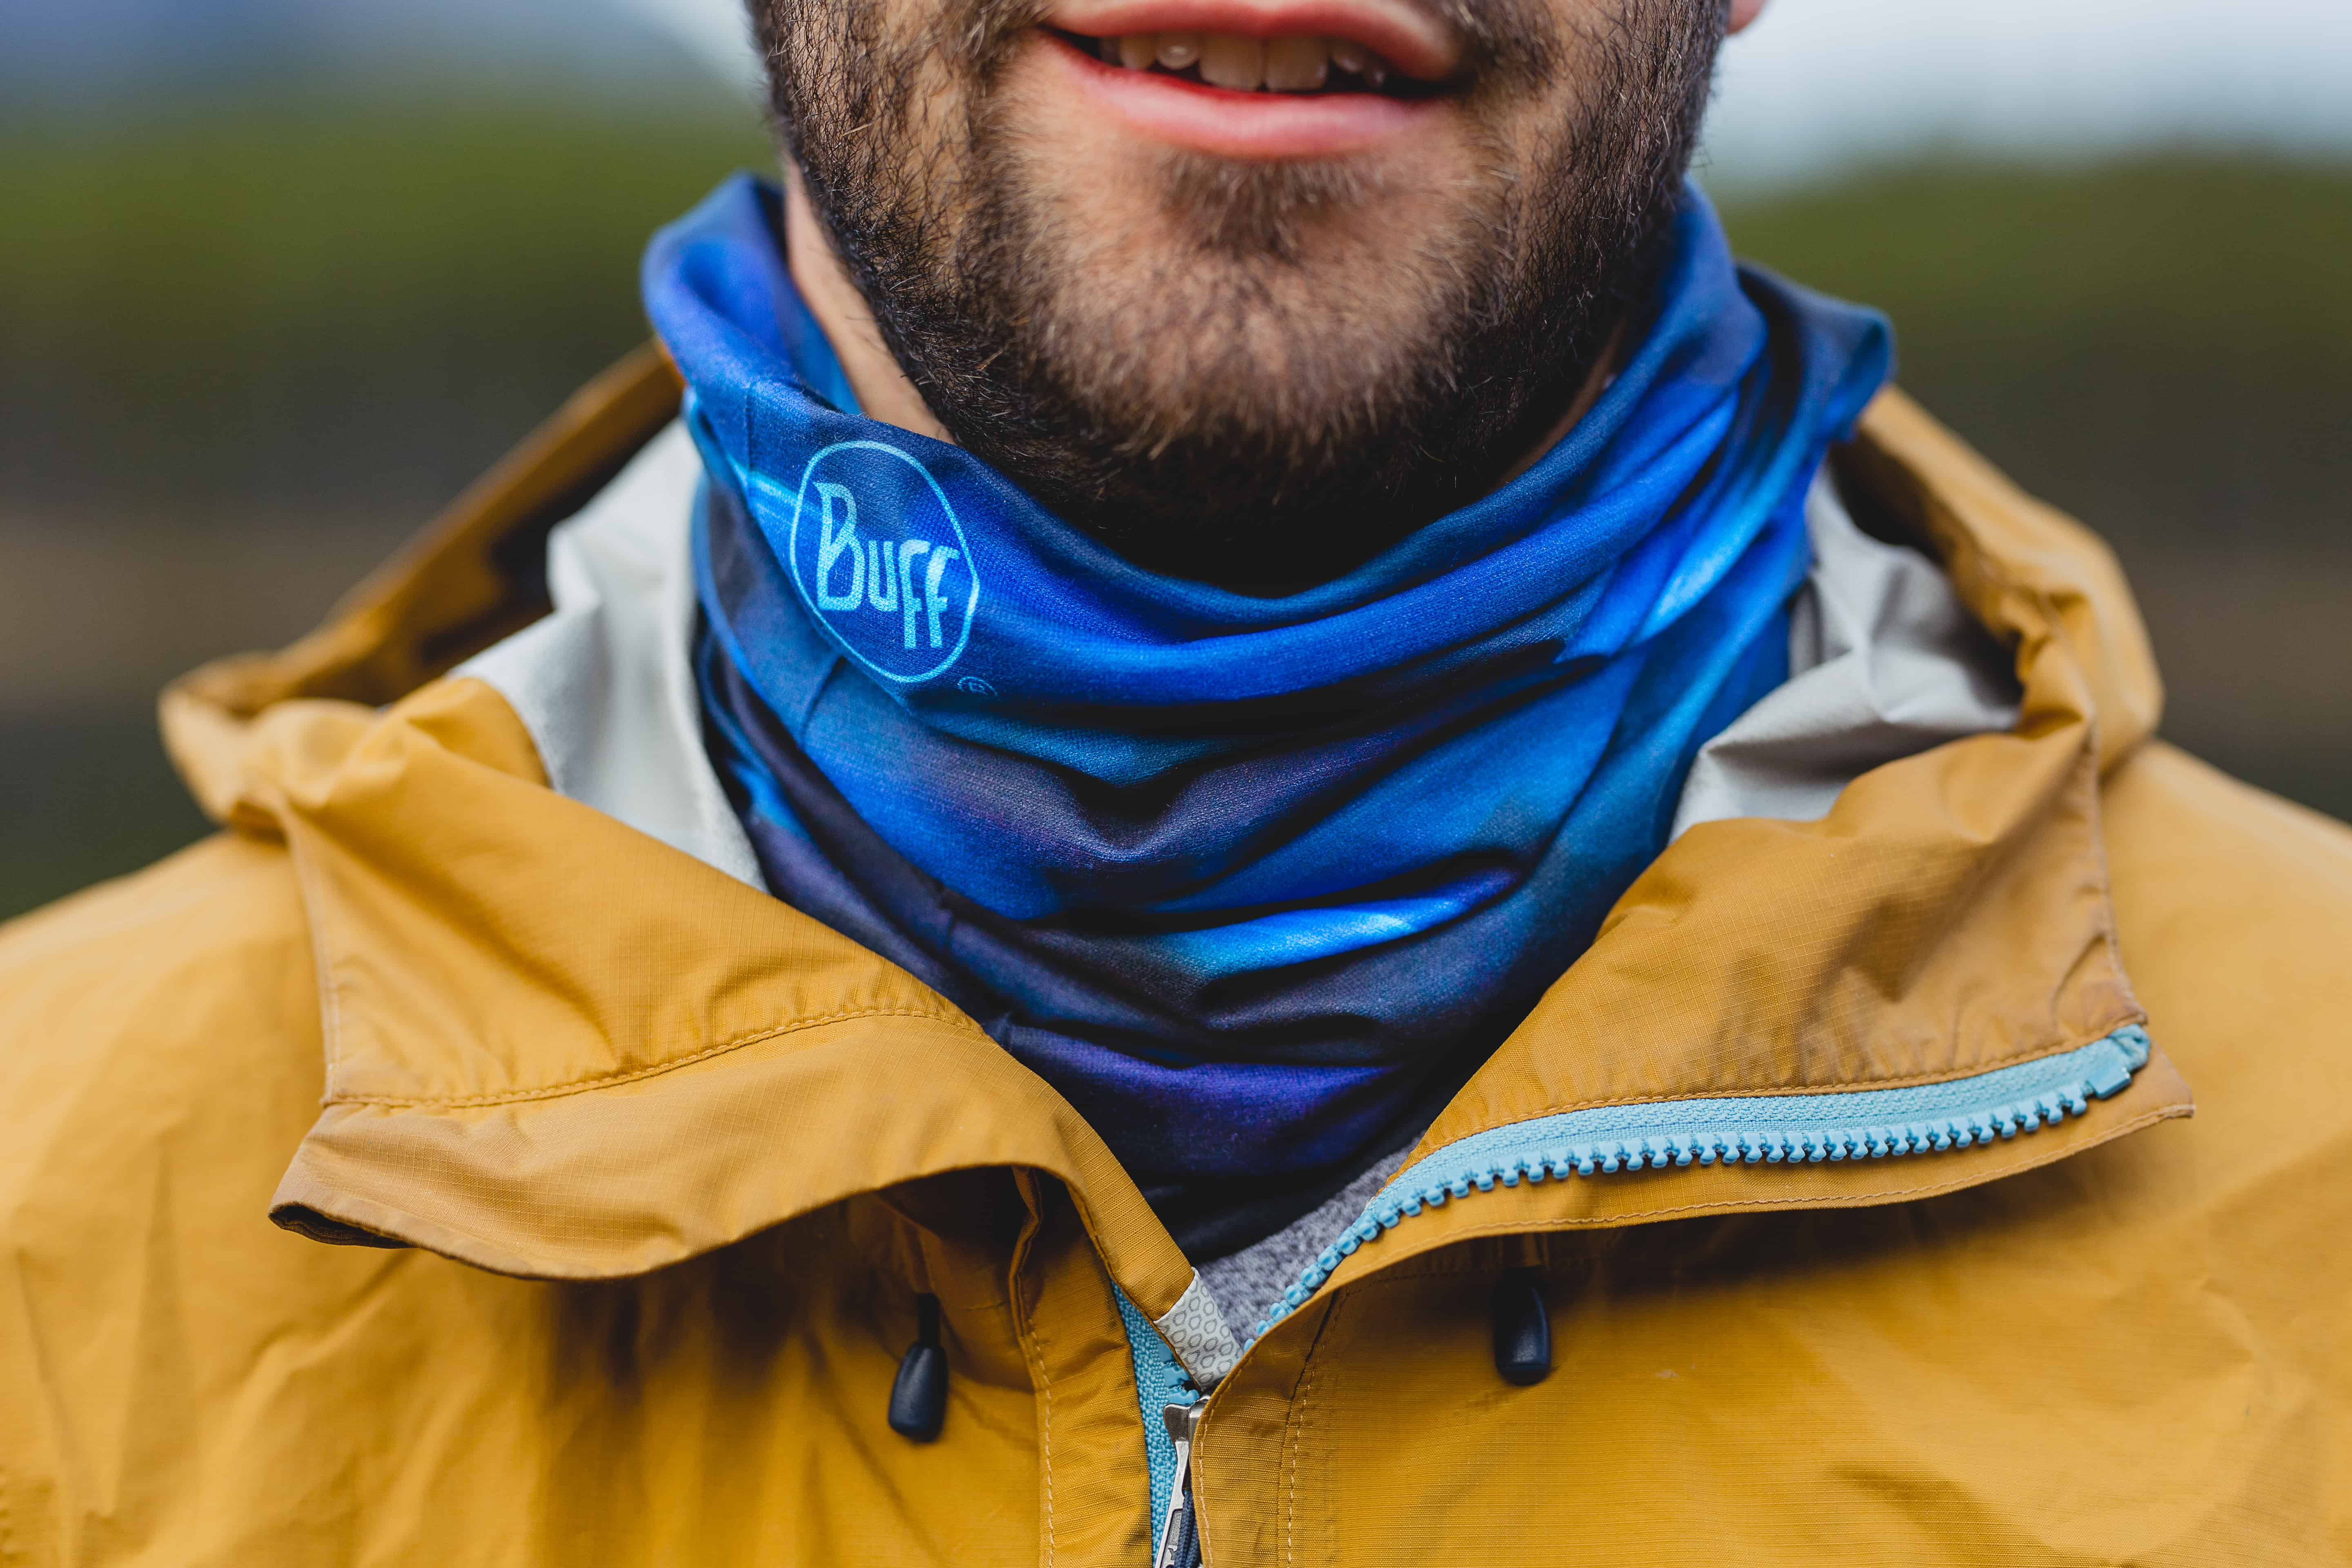 Gear Guide: Headwear For All Your Winter Adventures